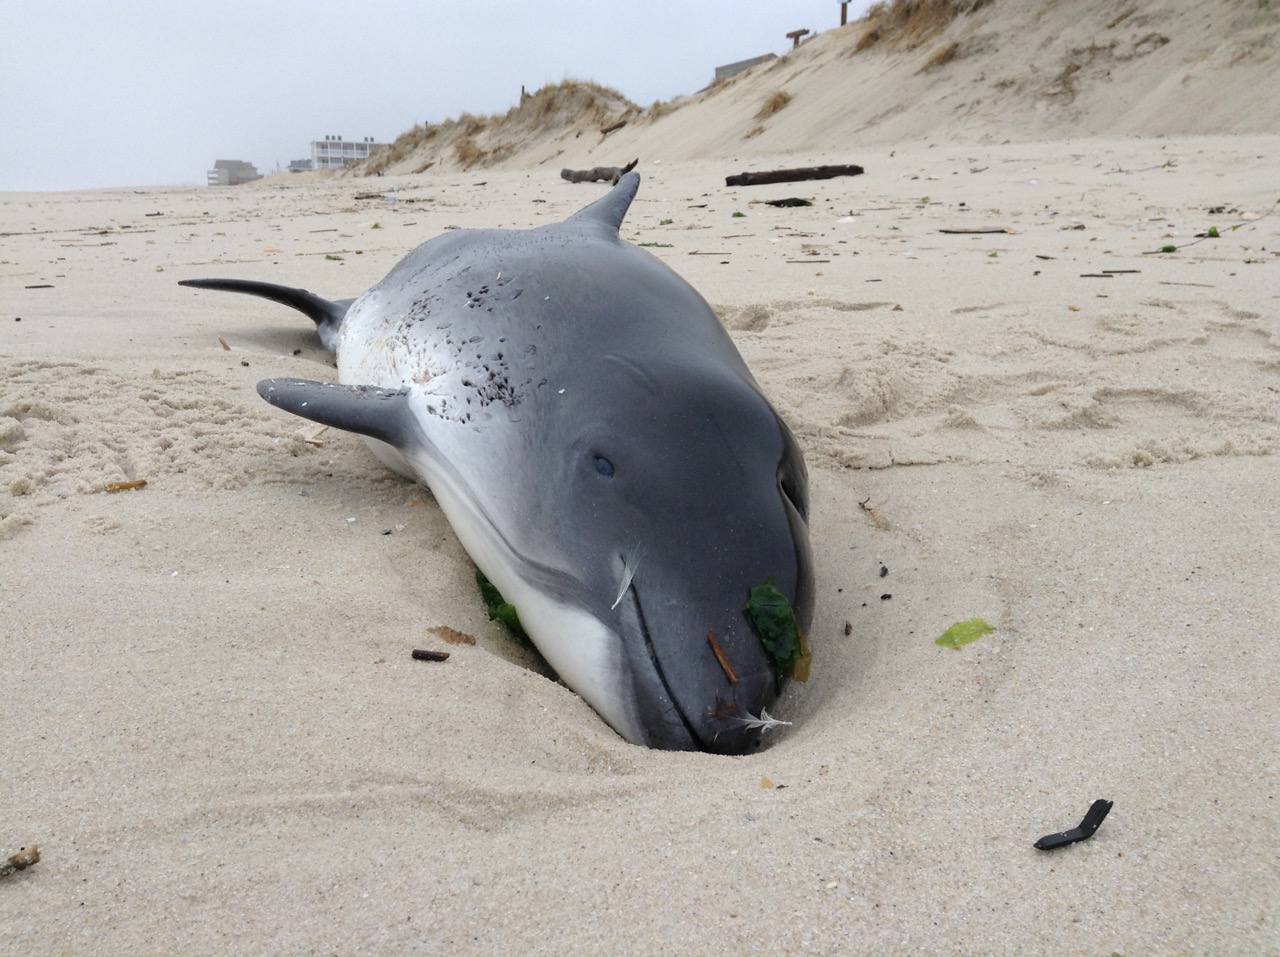 A marine mammal washed up on the beach in Lavallette, March 15, 2016. (Submitted Photo)